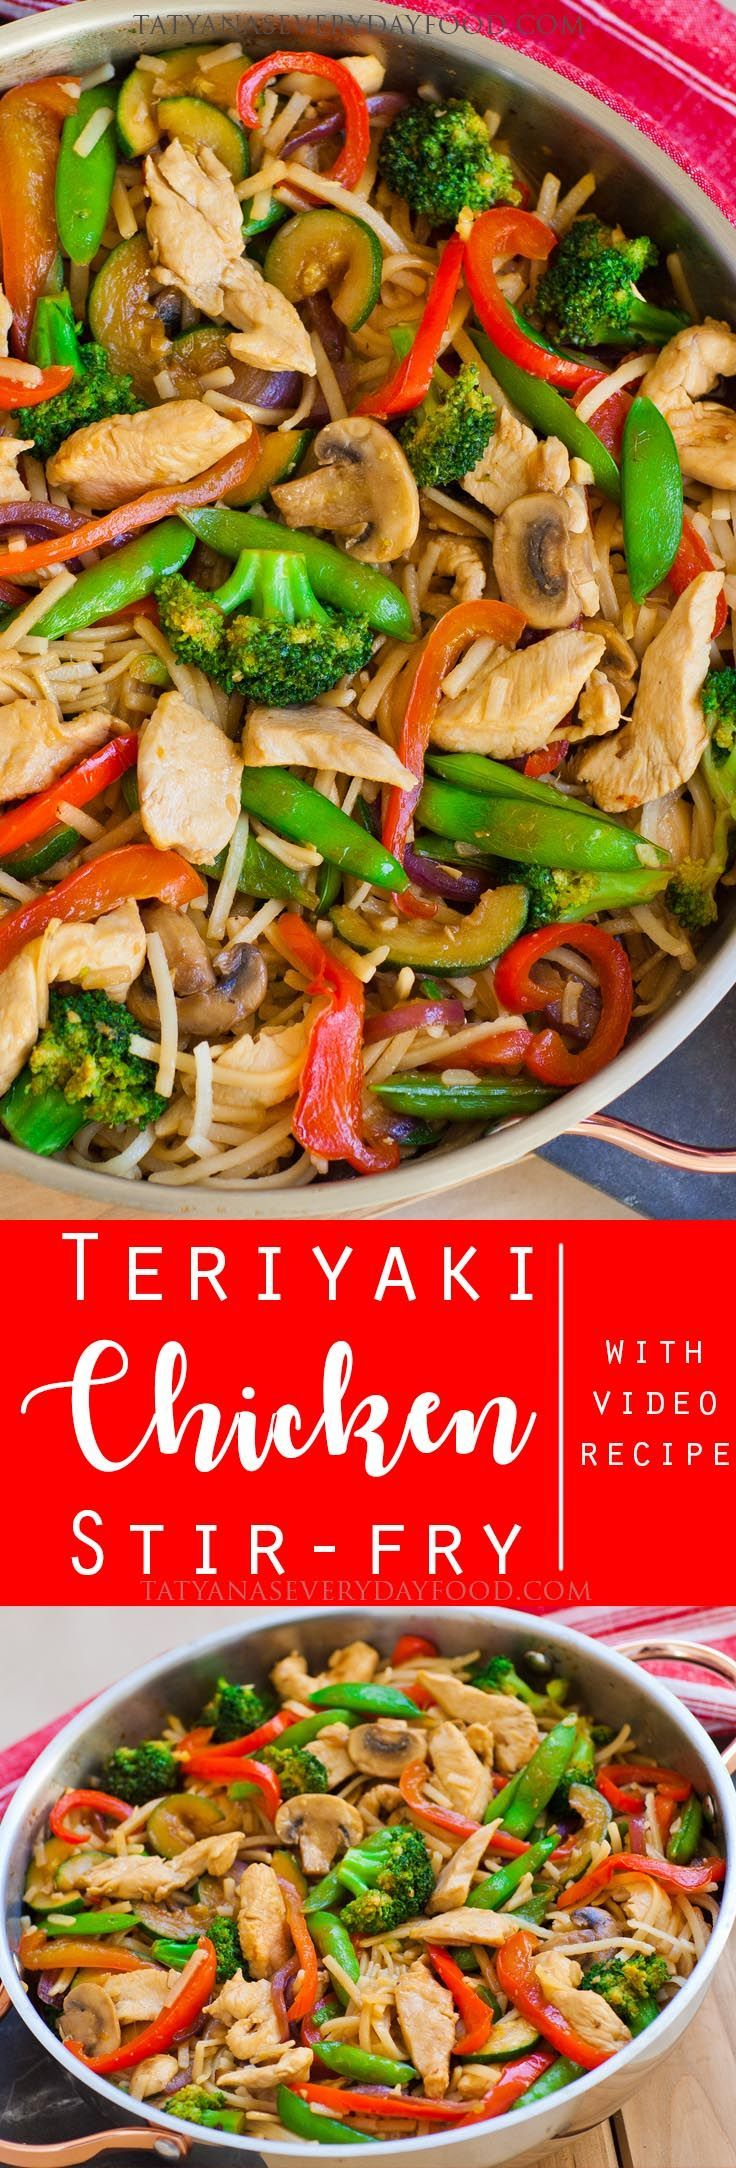 'Teriyaki Chicken Stir-Fry' made with tons of veggies and a home-made sauce! This recipe is one of our favorites and for a good reason – it's unbelievably delicious! The sauce really makes this dish and it's very easy to make! Toss in all of your favorite veggies and feel free to serve the stir-fry over […]